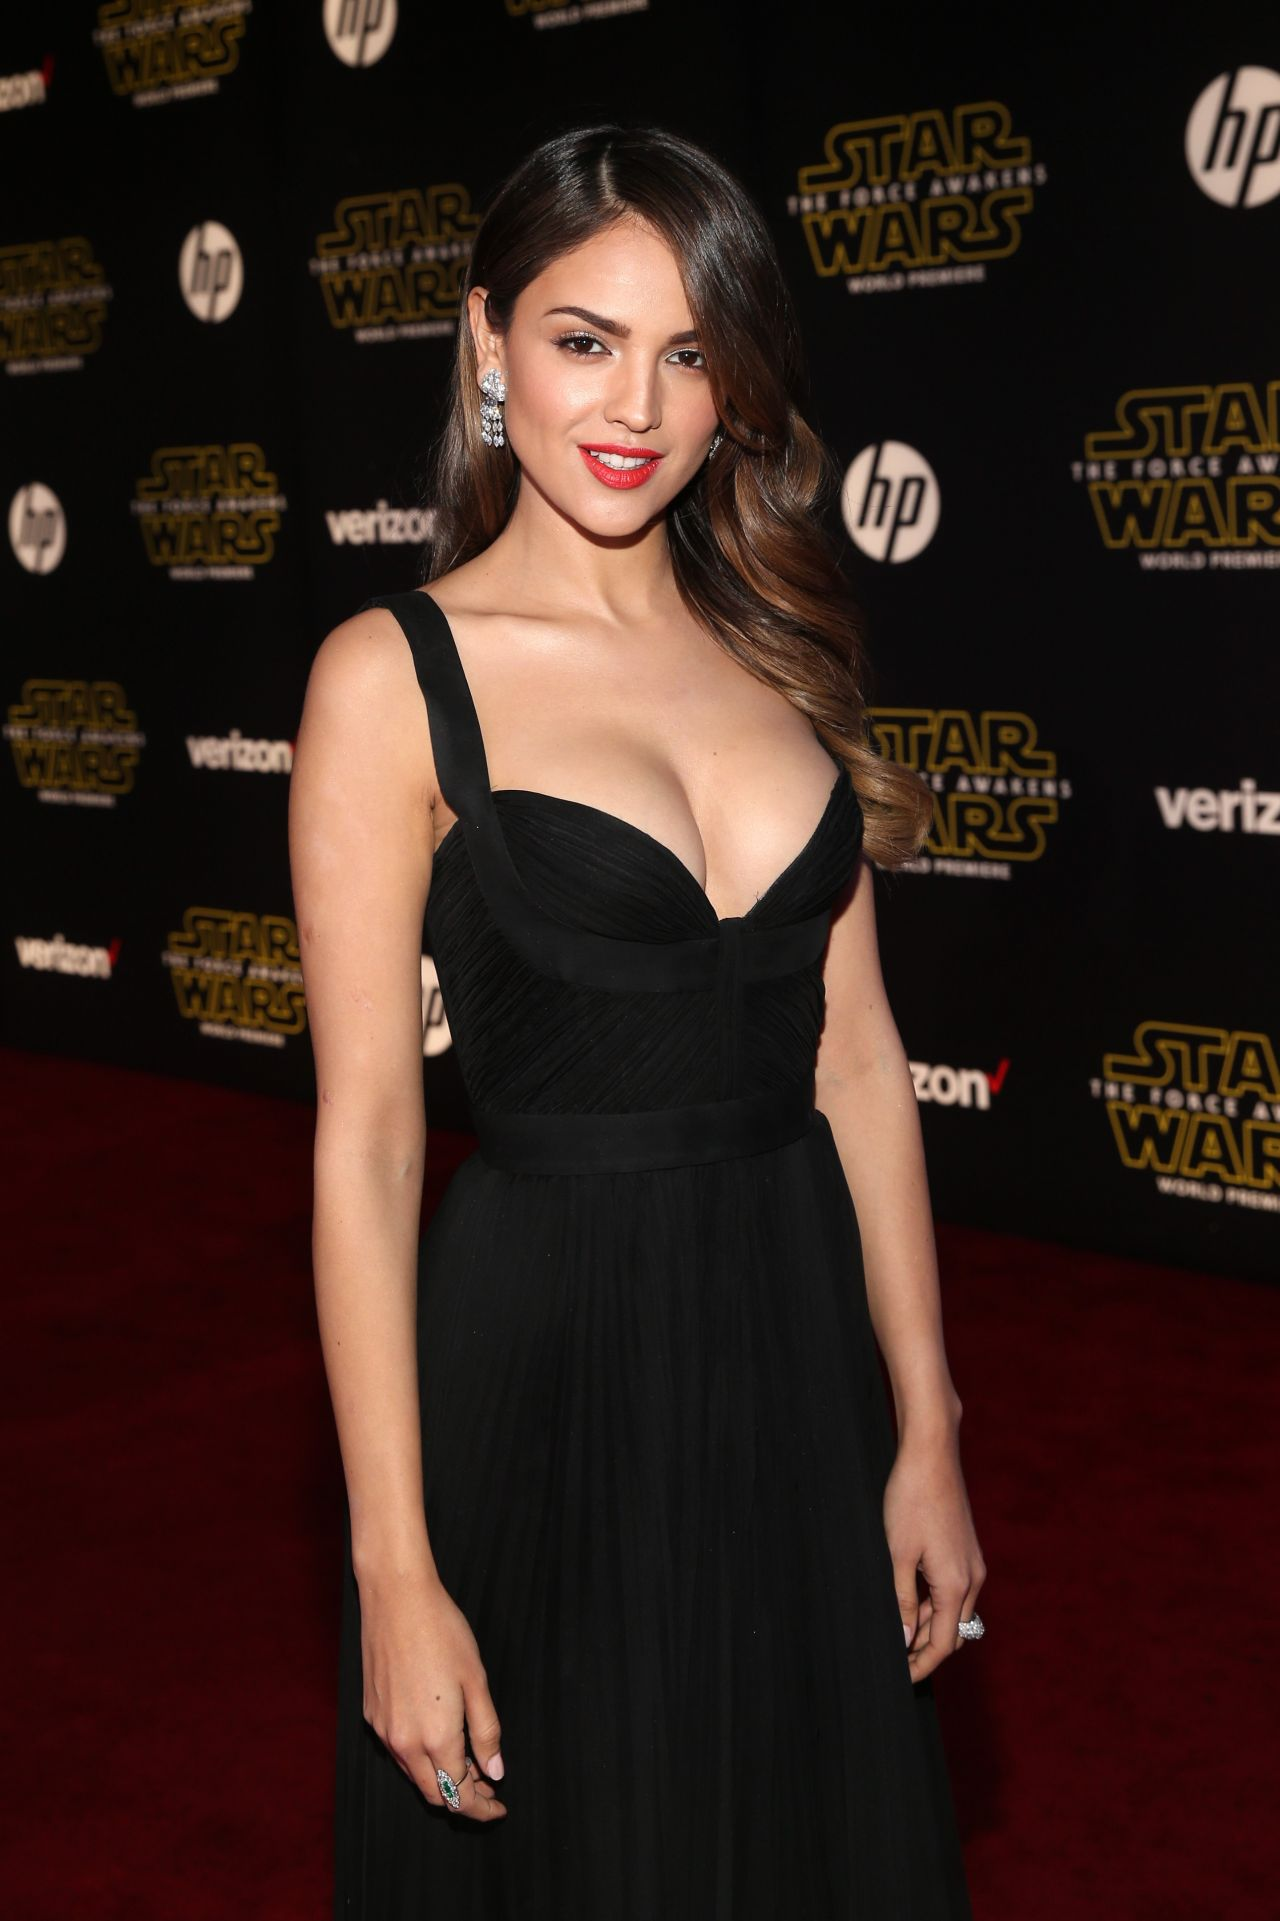 Celebs at 'Star Wars' premiere offer glowing reviews ...